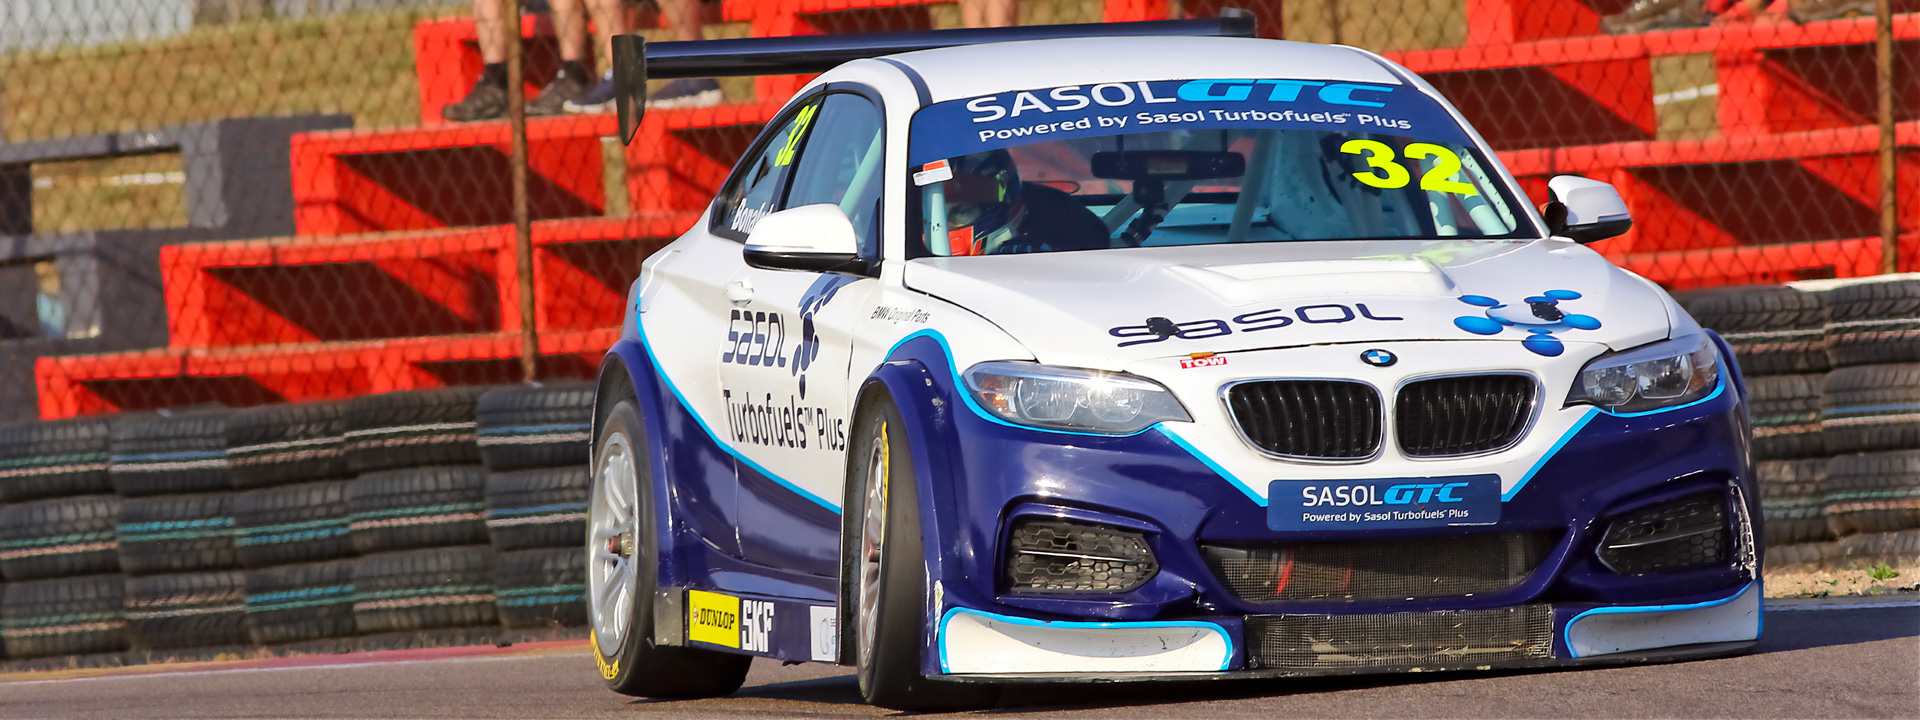 Sasol Raceday brings Extreme Festival back to Zwartkops Raceway on 18 August 2018